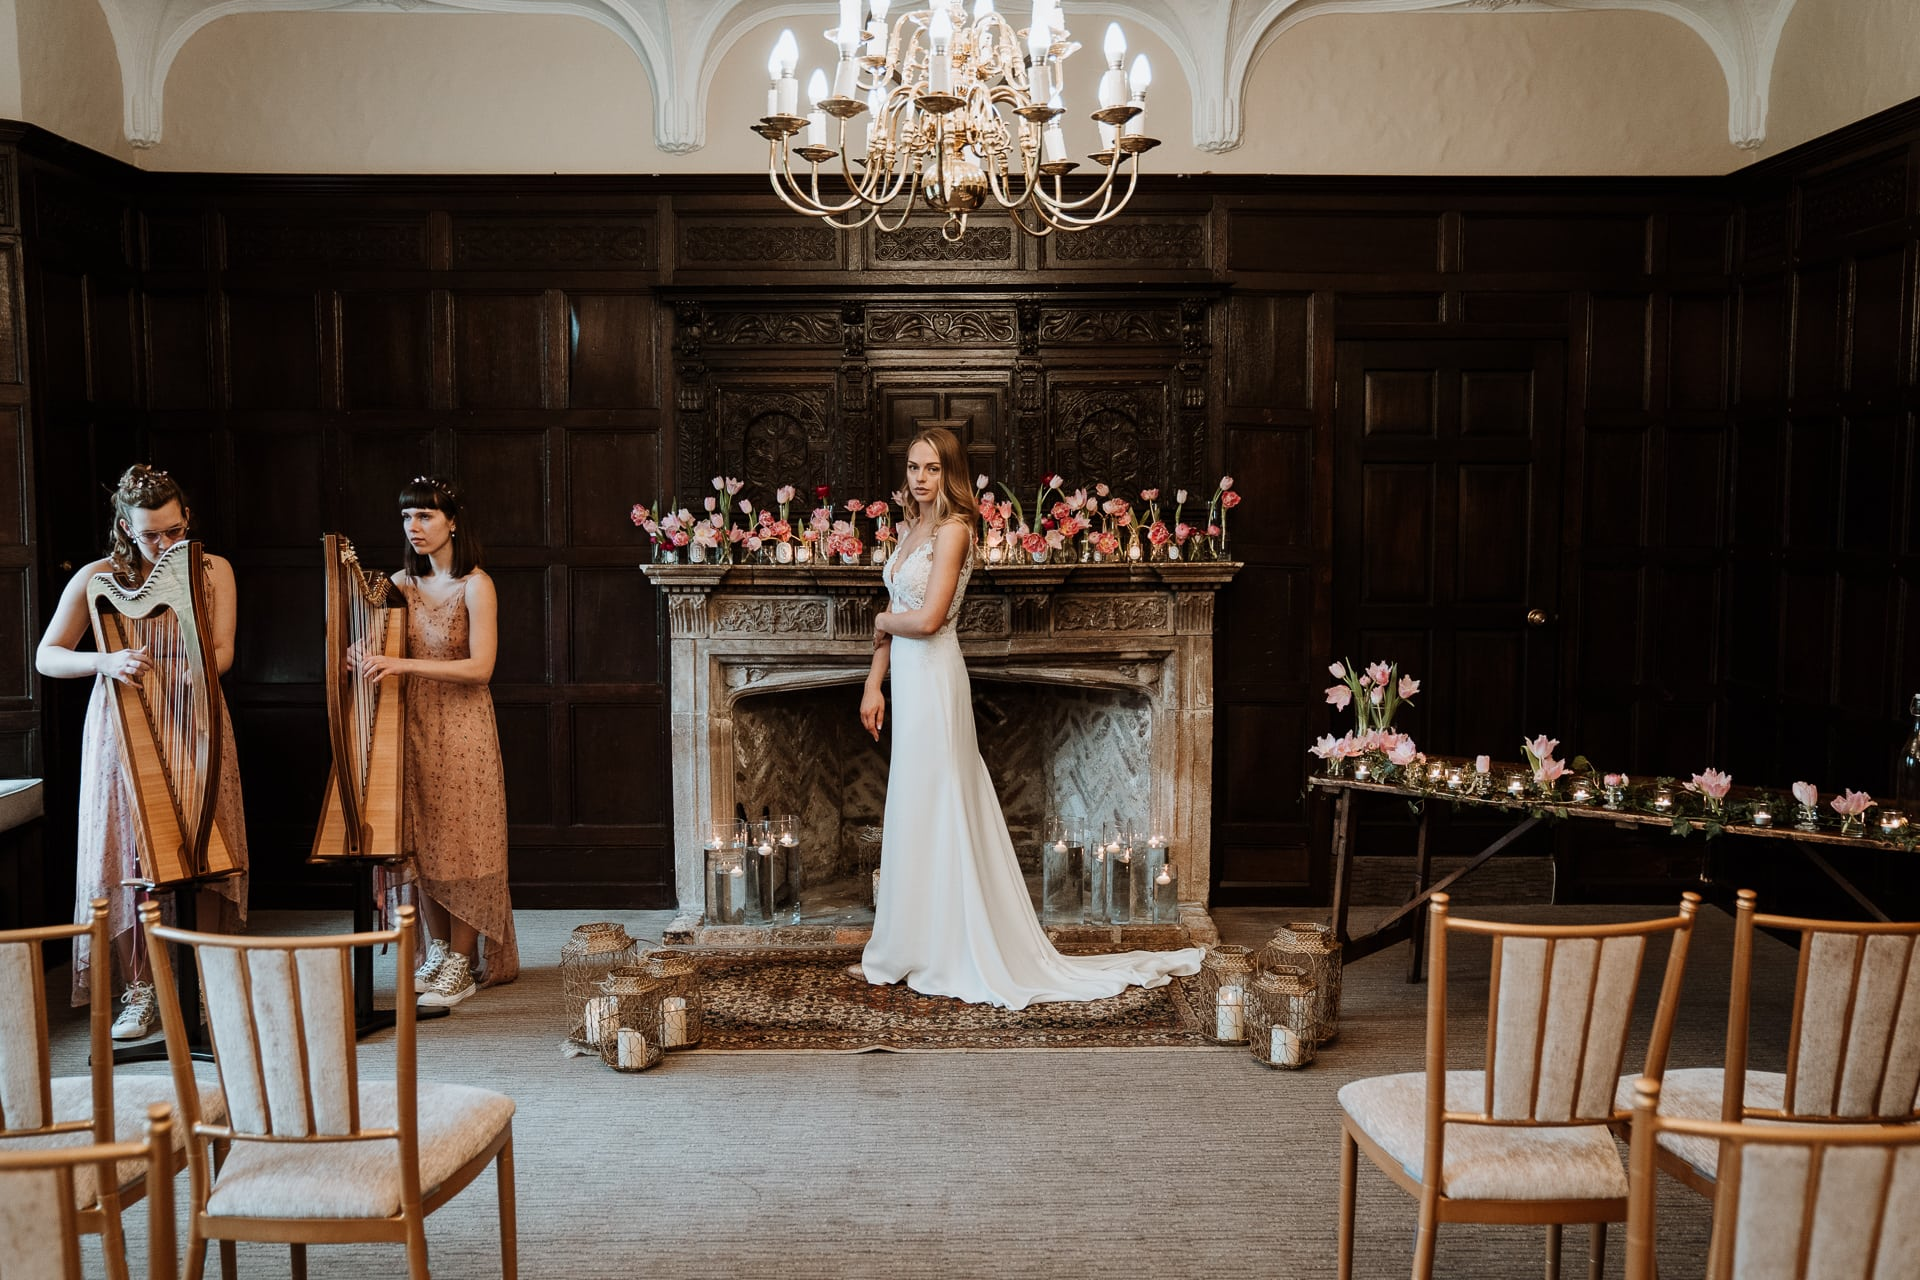 Stunning Bride in front of Bishop of Bayeux fireplace at Eastwell Manor with harpists